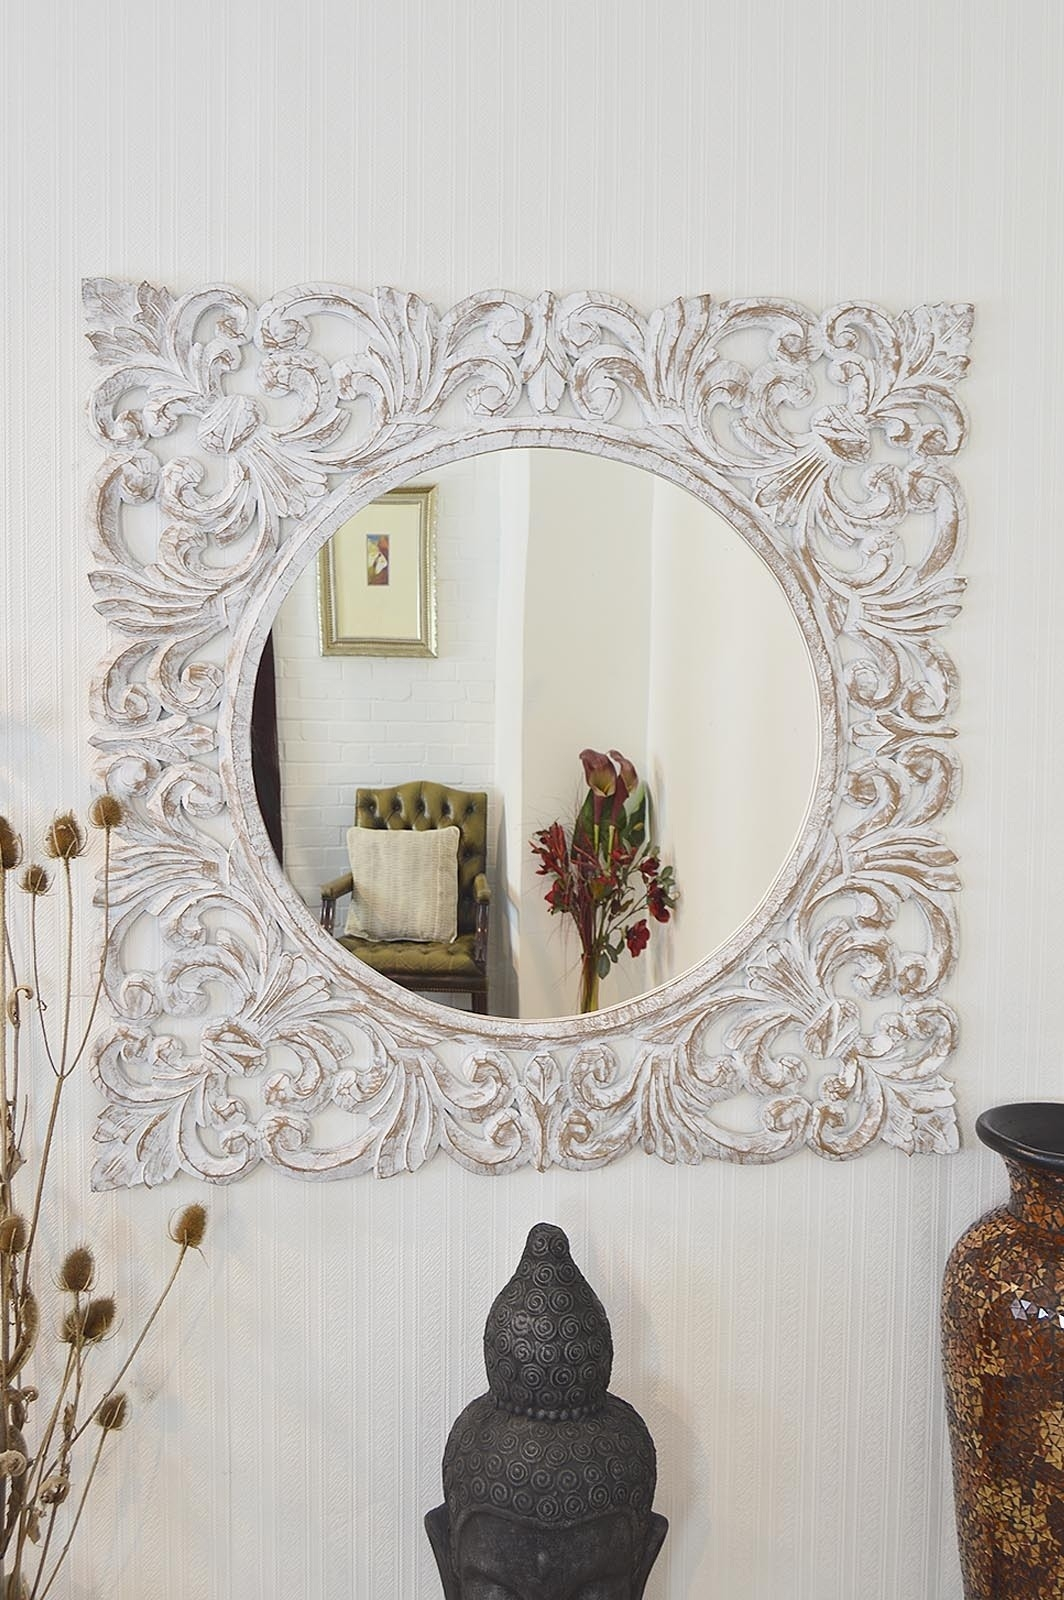 Large White Mirror Gillmore Space White And White Accent Minimal For Large Ornate White Mirror (Image 5 of 15)